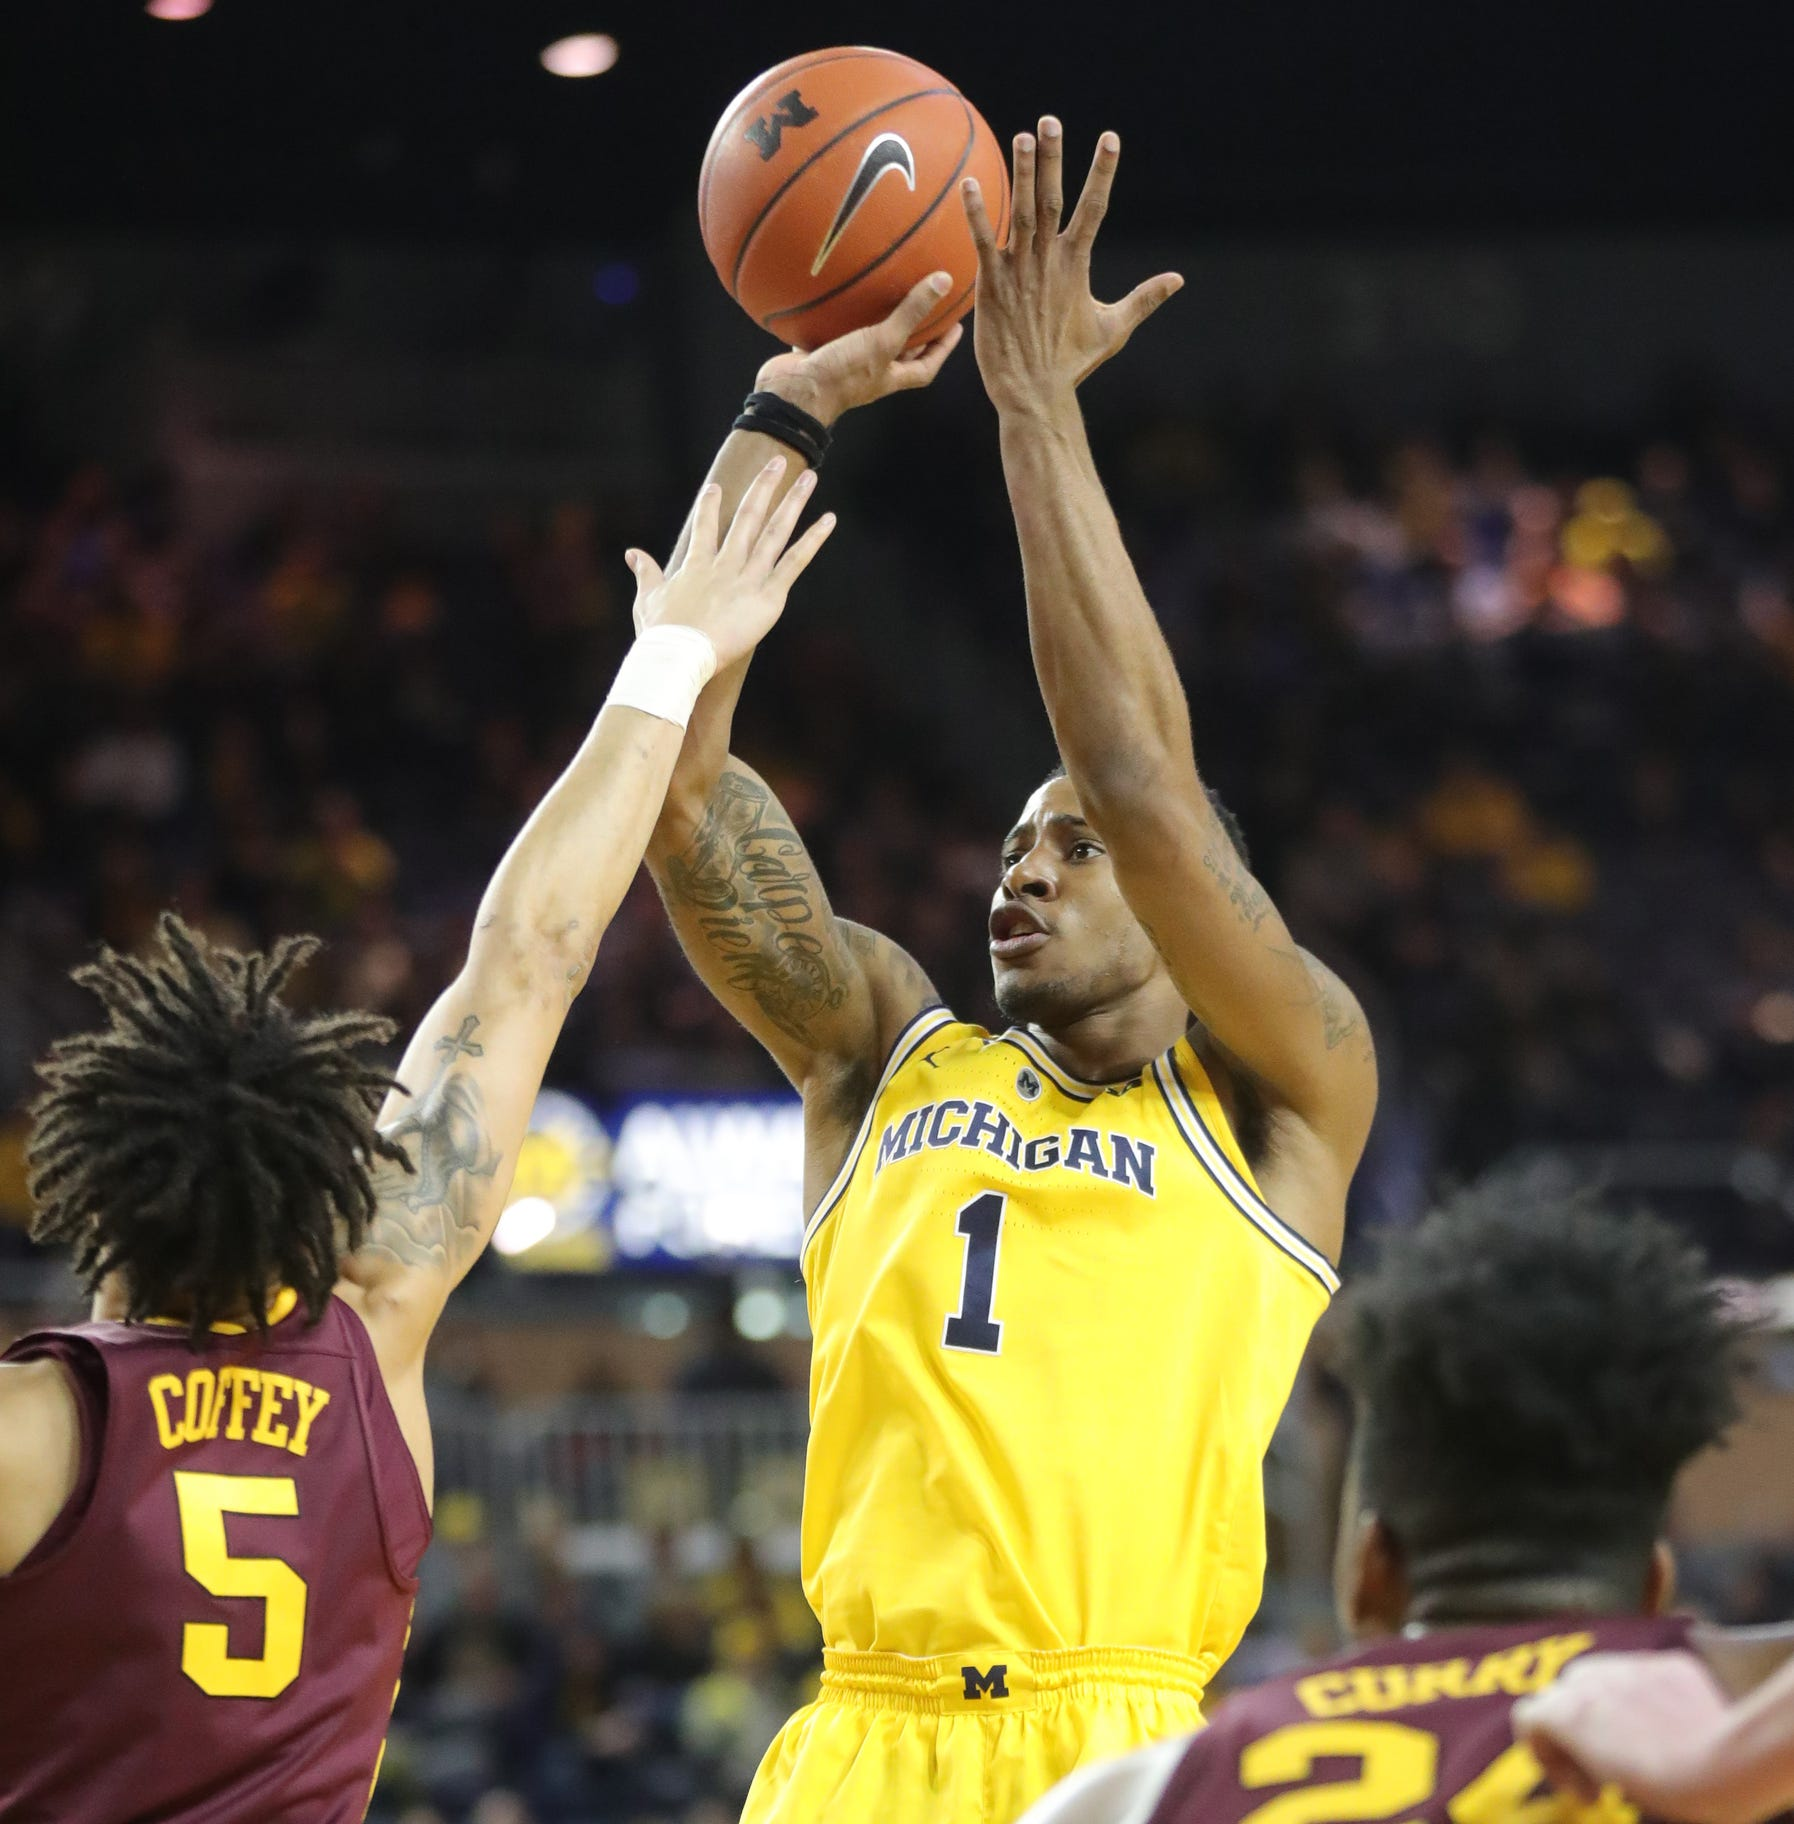 U-M basketball has greatness within reach, if only it can lighten up